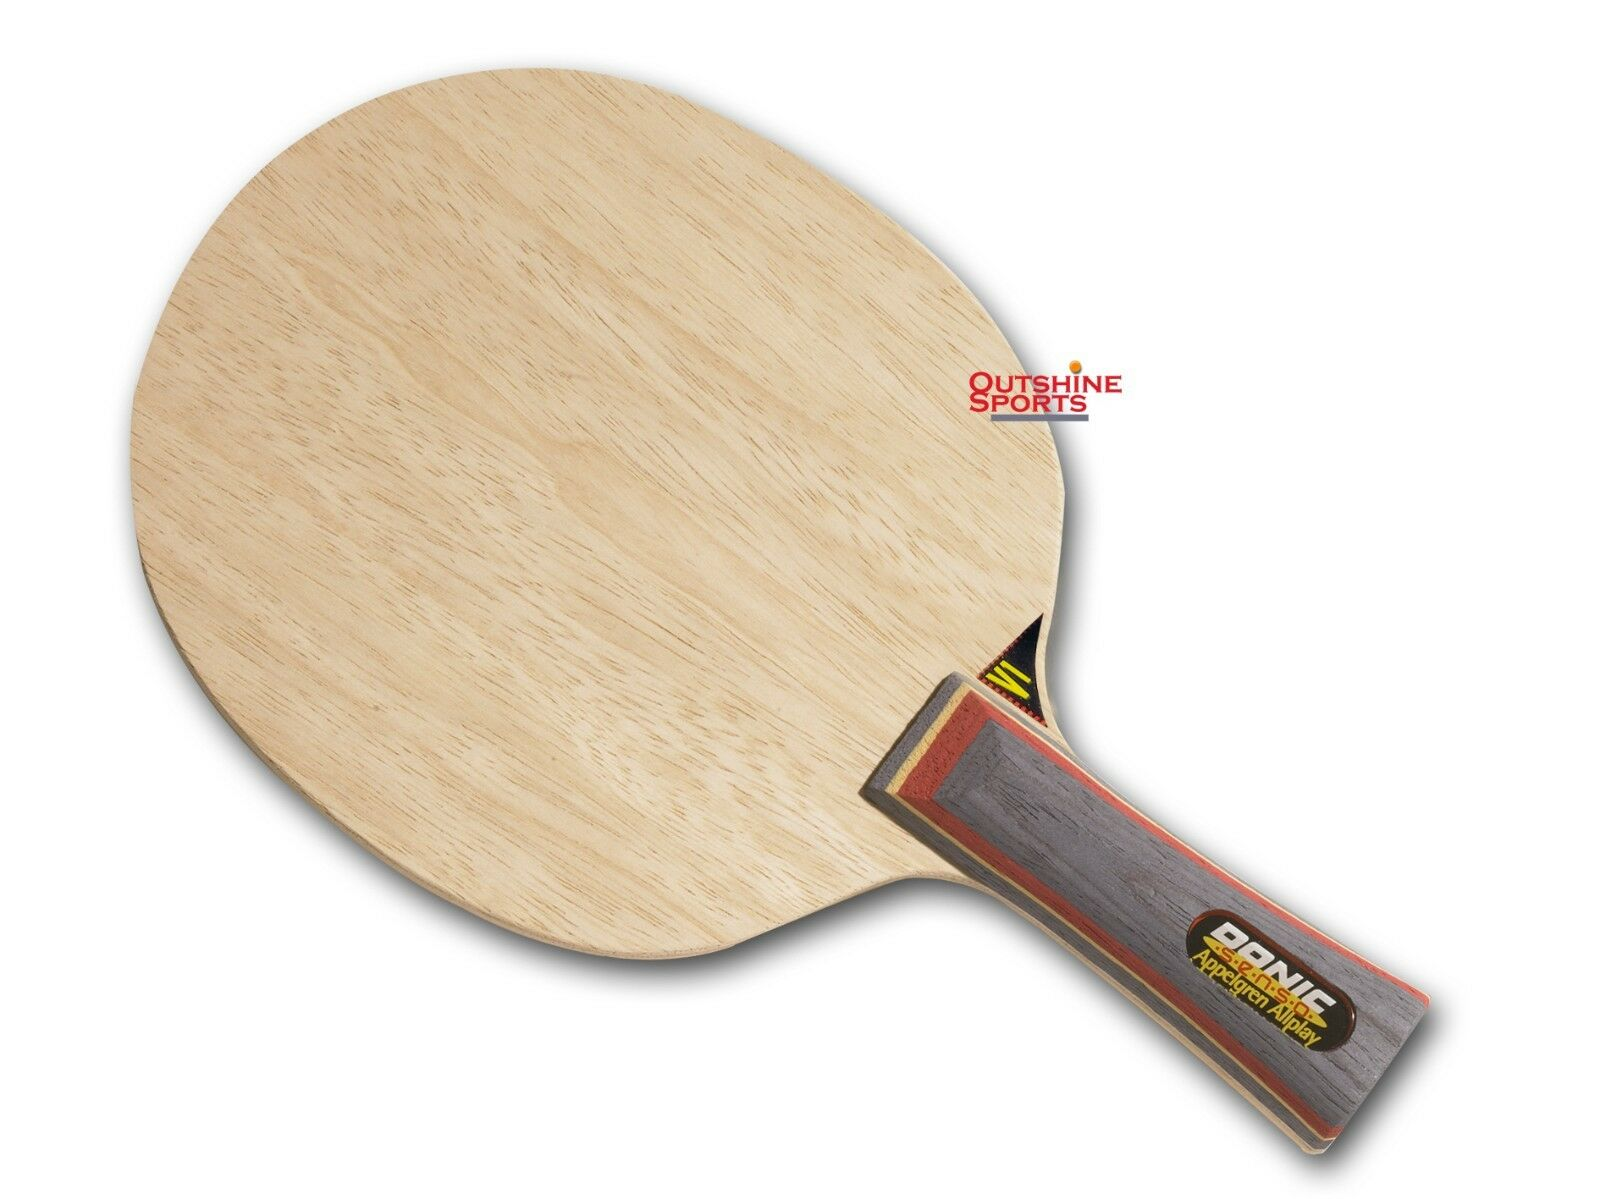 Donic Appelgren Allplay Senso V1 Table Tennis Blade